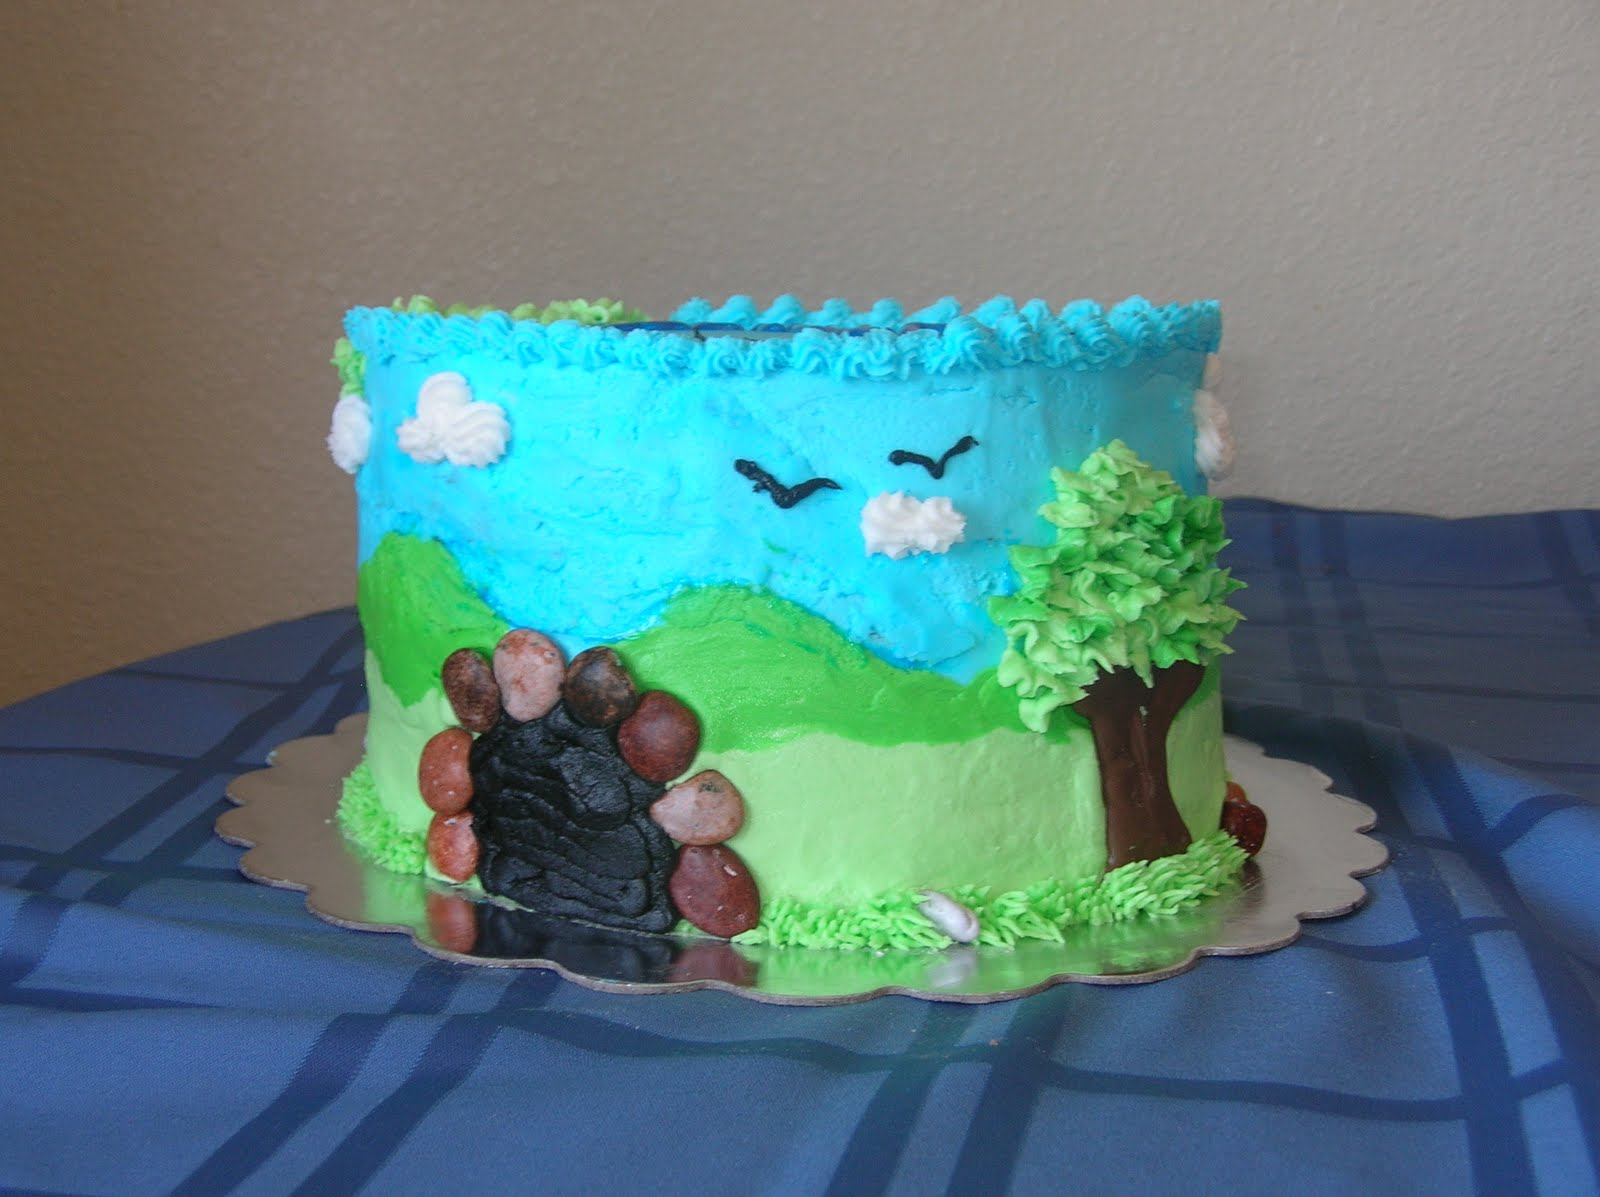 Crafting Weasels How To Make A Birthday Cake For A Boy Obsessed